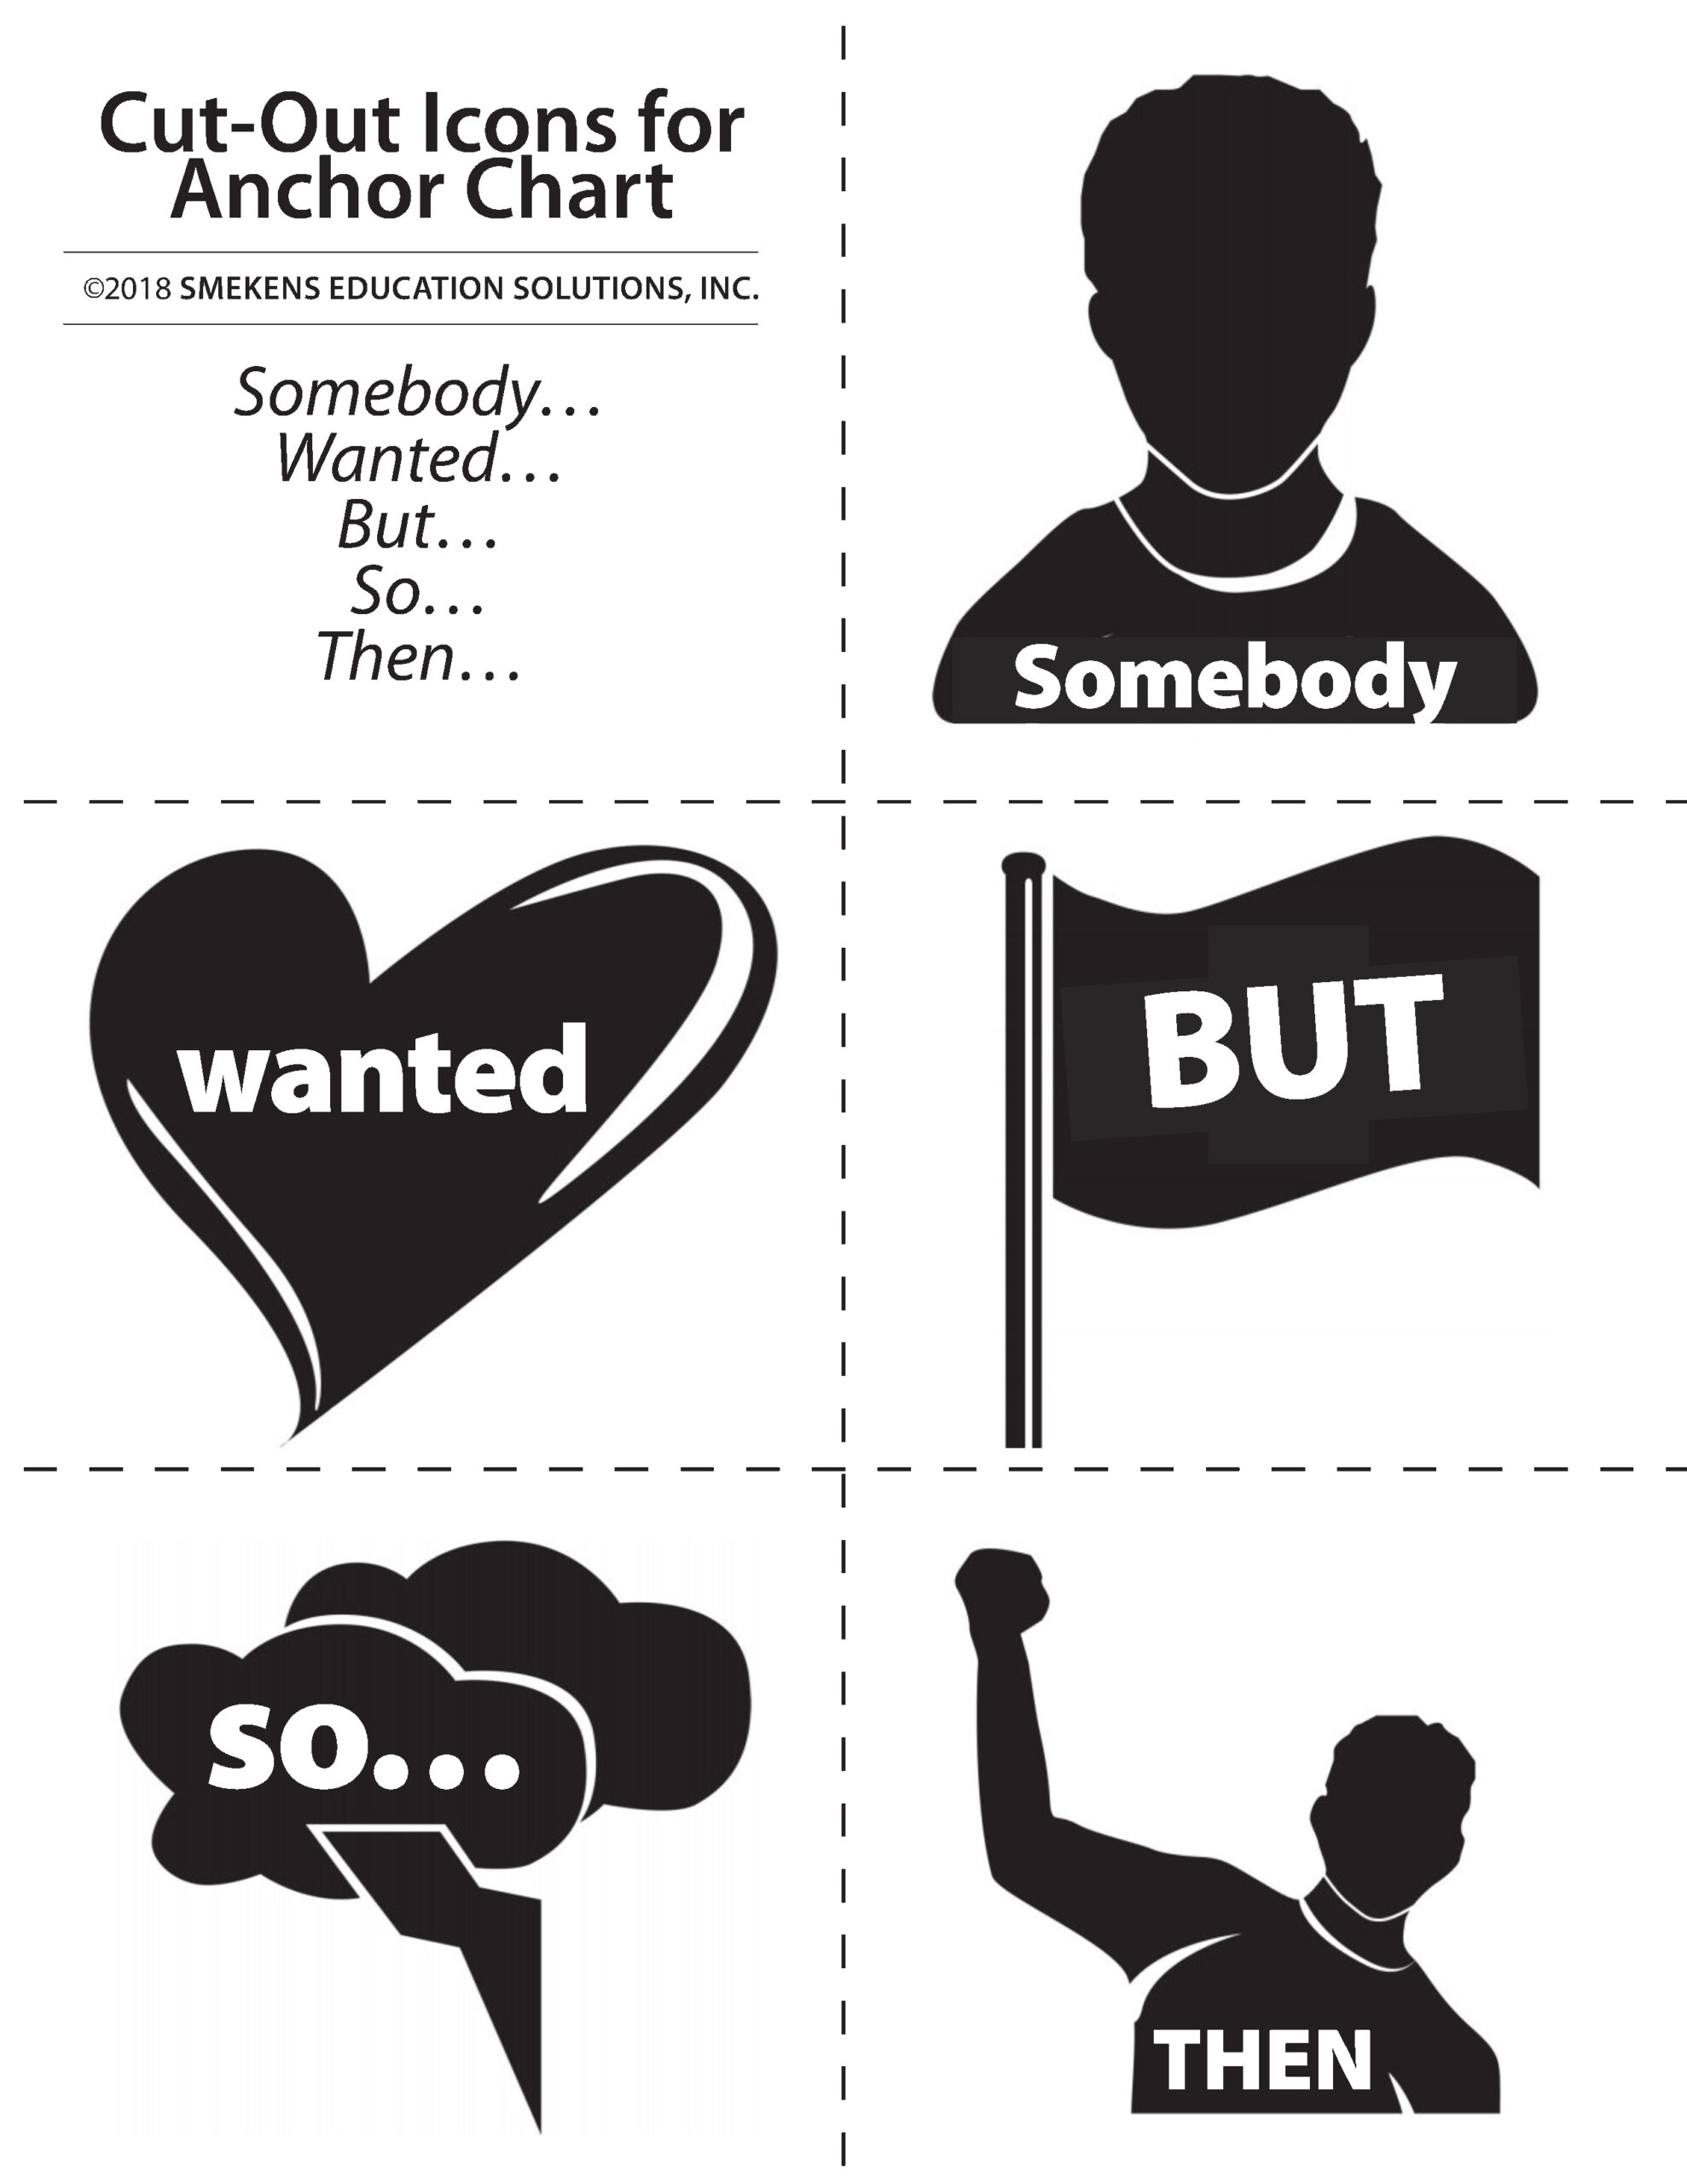 Somebody, Wanted, But, So, Then Cutout Icons in Black & White